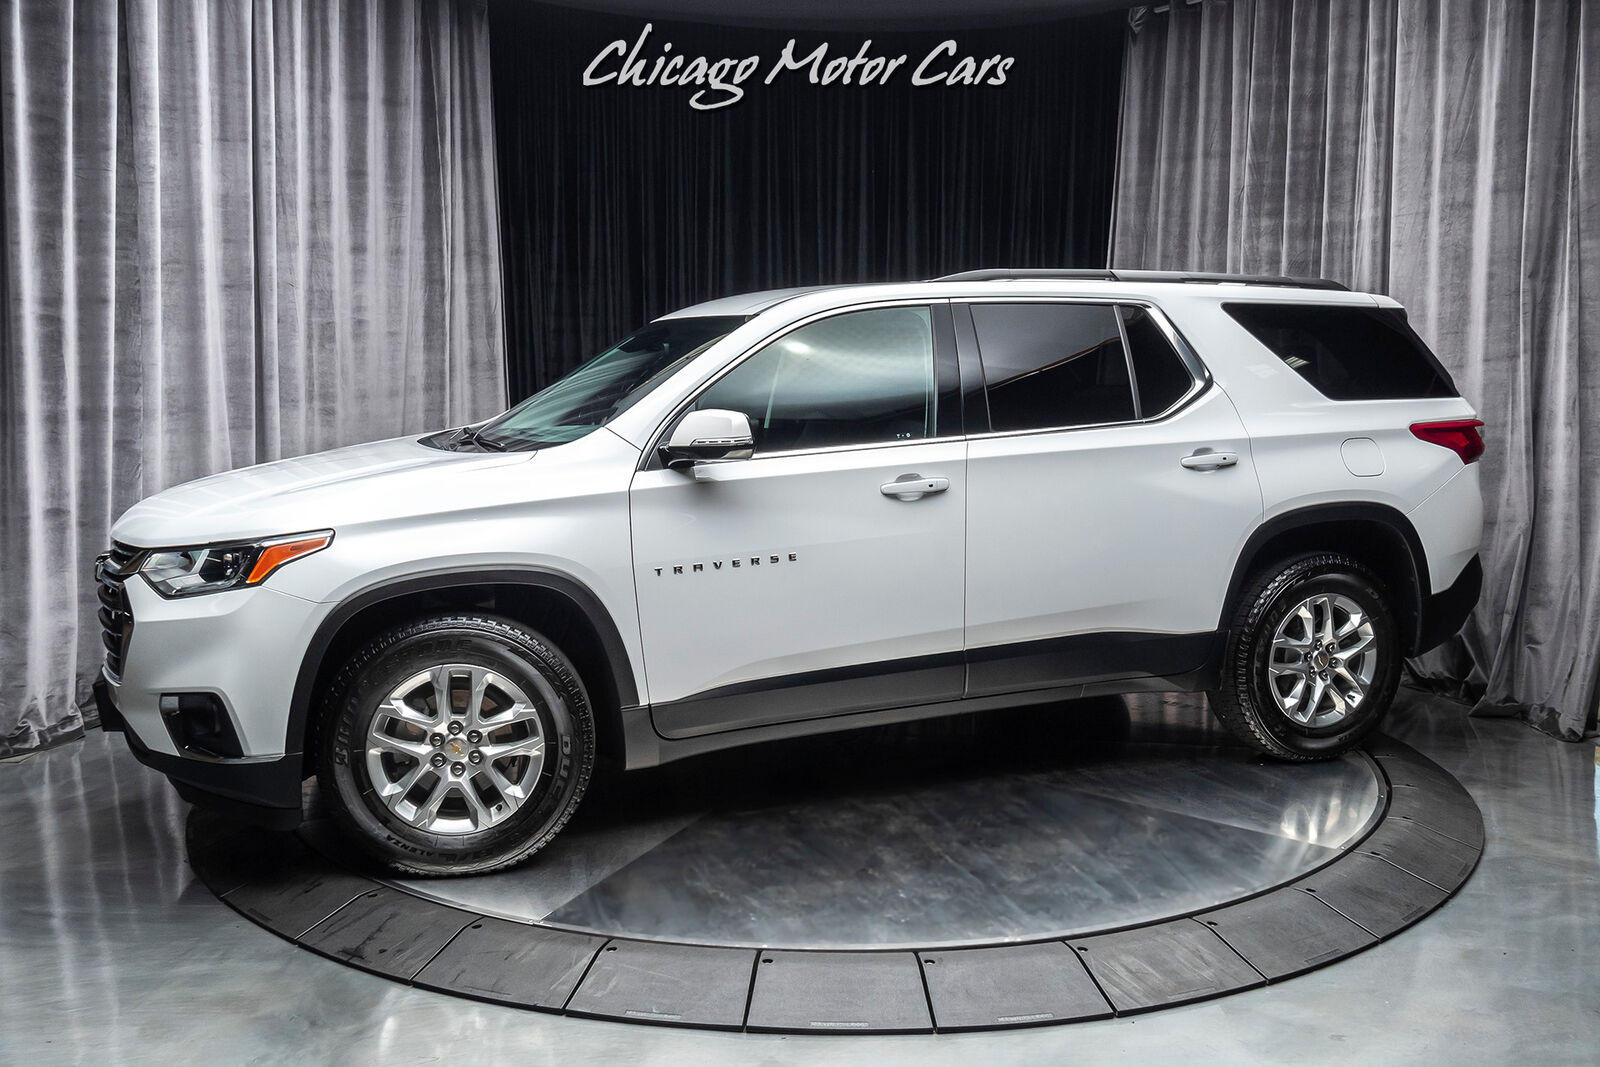 2019 Chevrolet Traverse AWD 1LT SUV WELL EQUIPPED! EXCELLENT DAILY DRIVER!